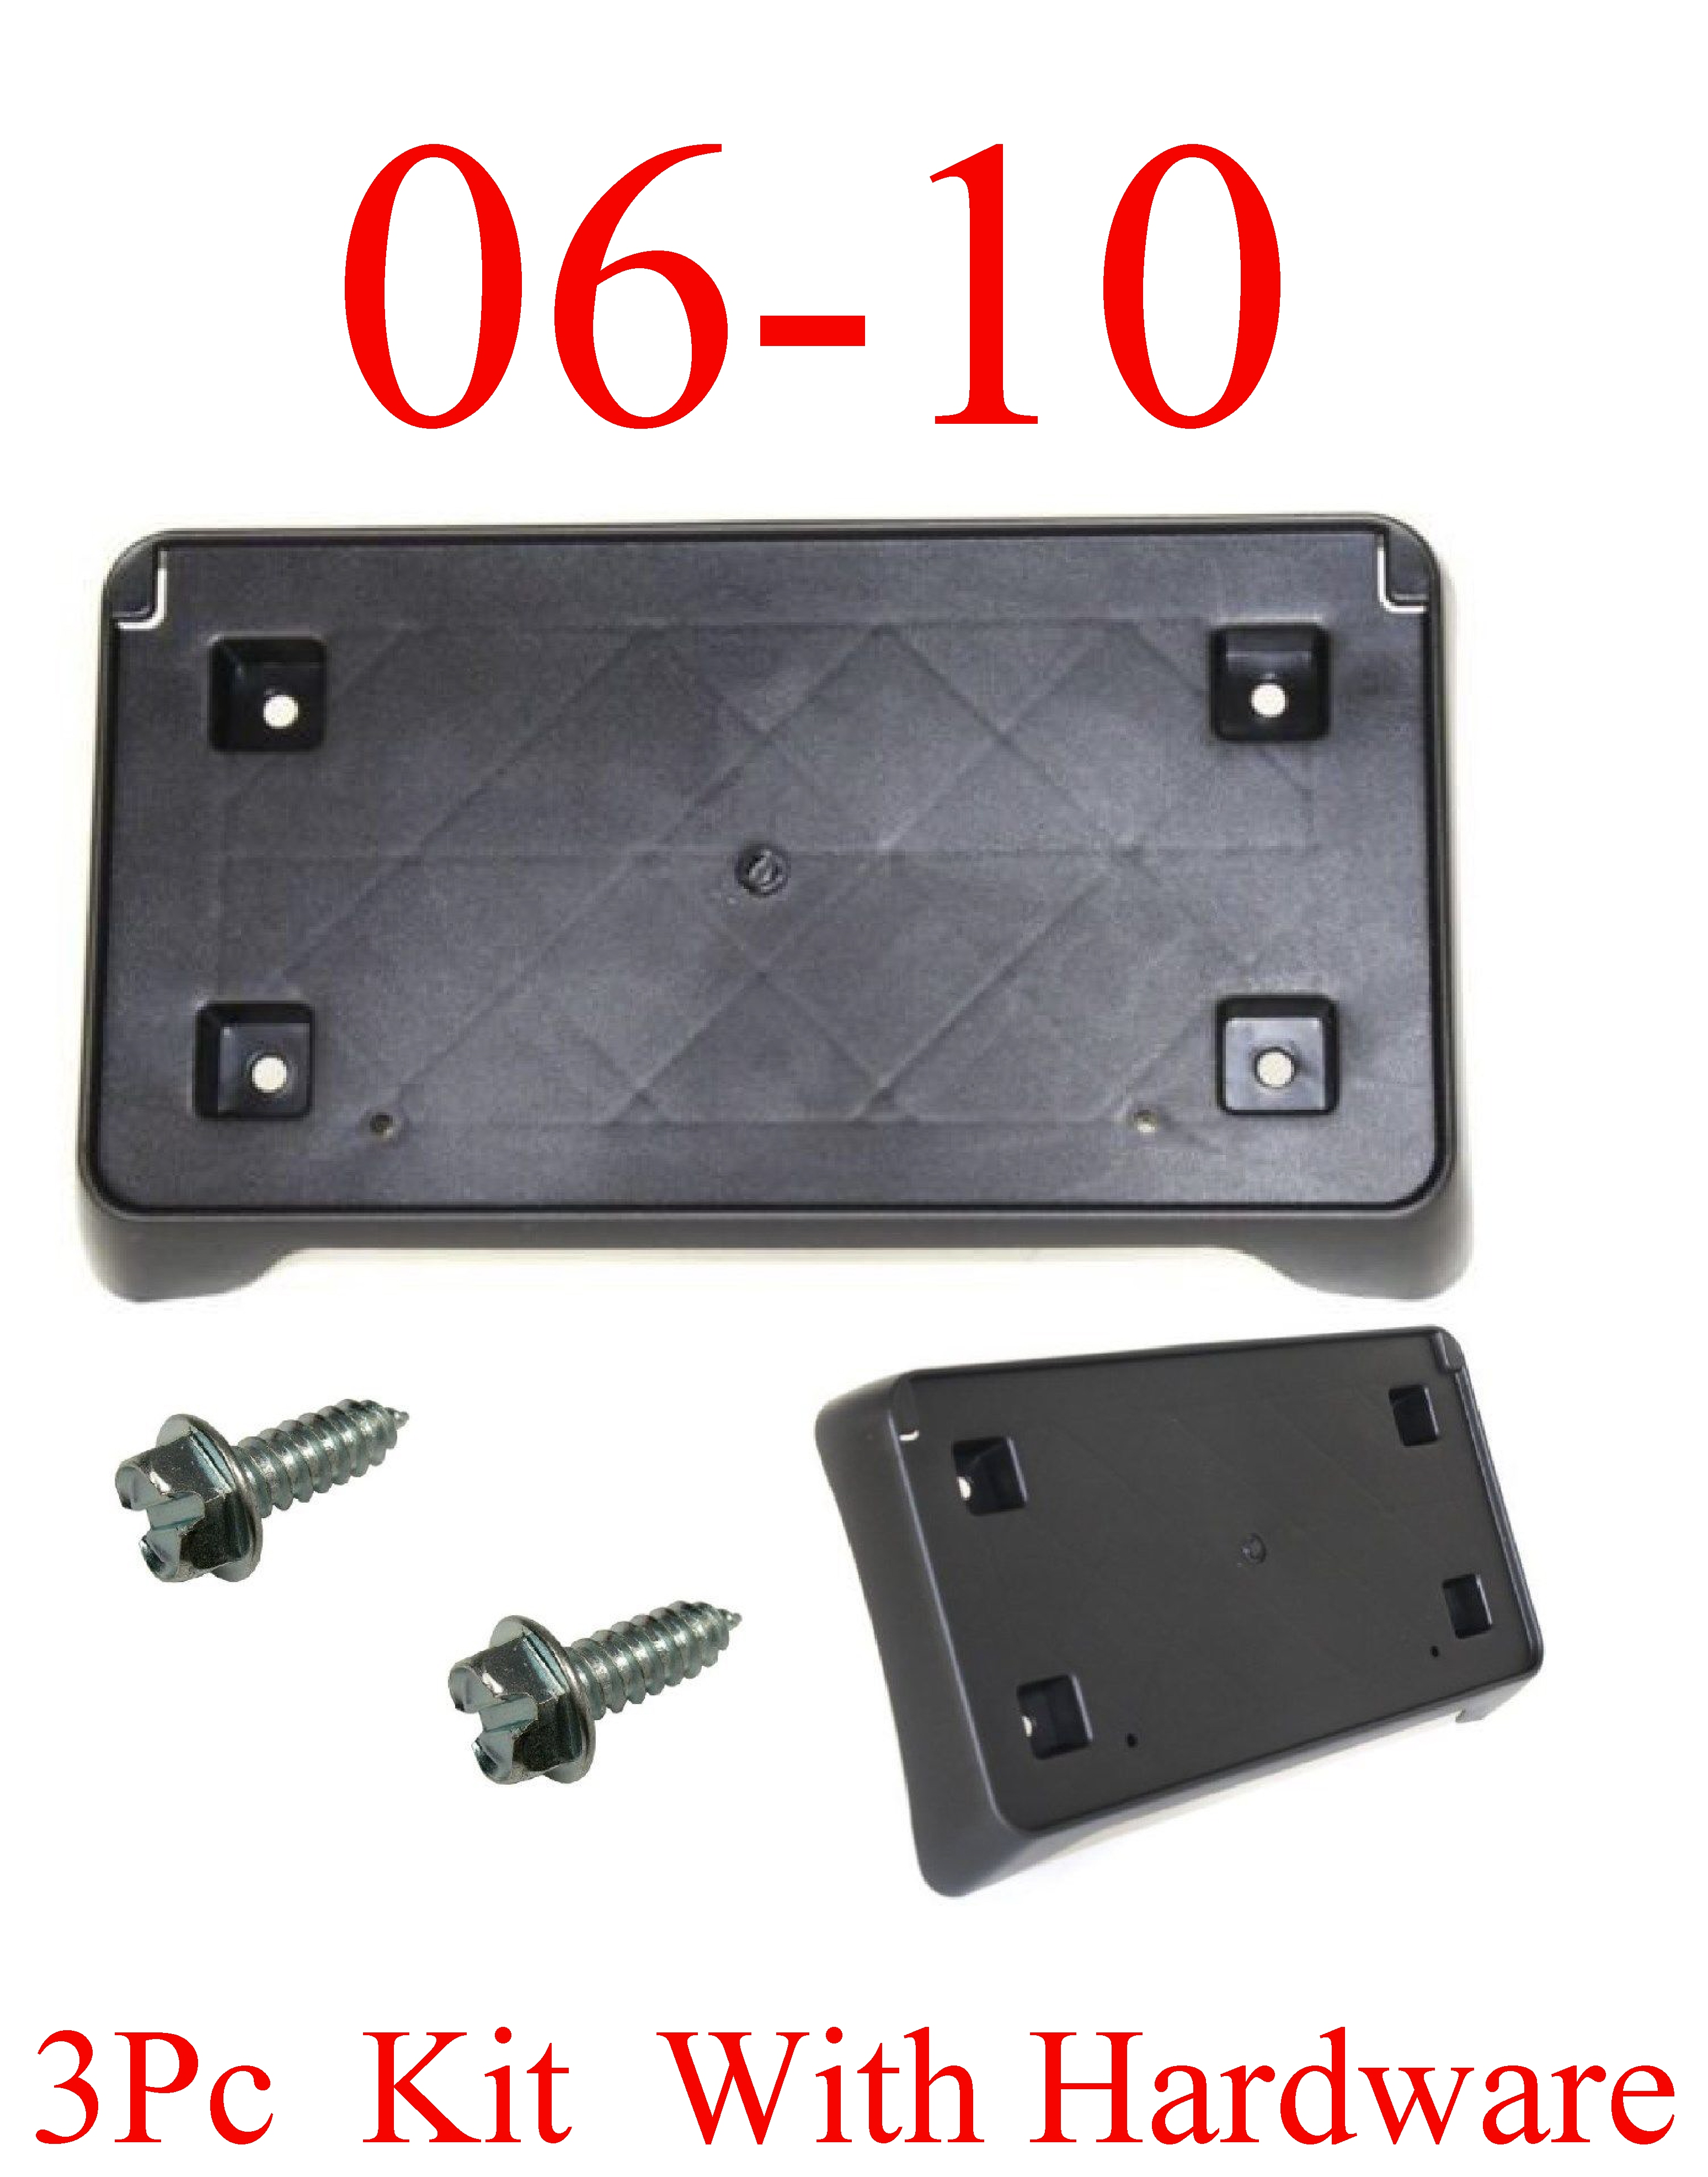 06 10 Dodge Charger Front License Plate Bracket